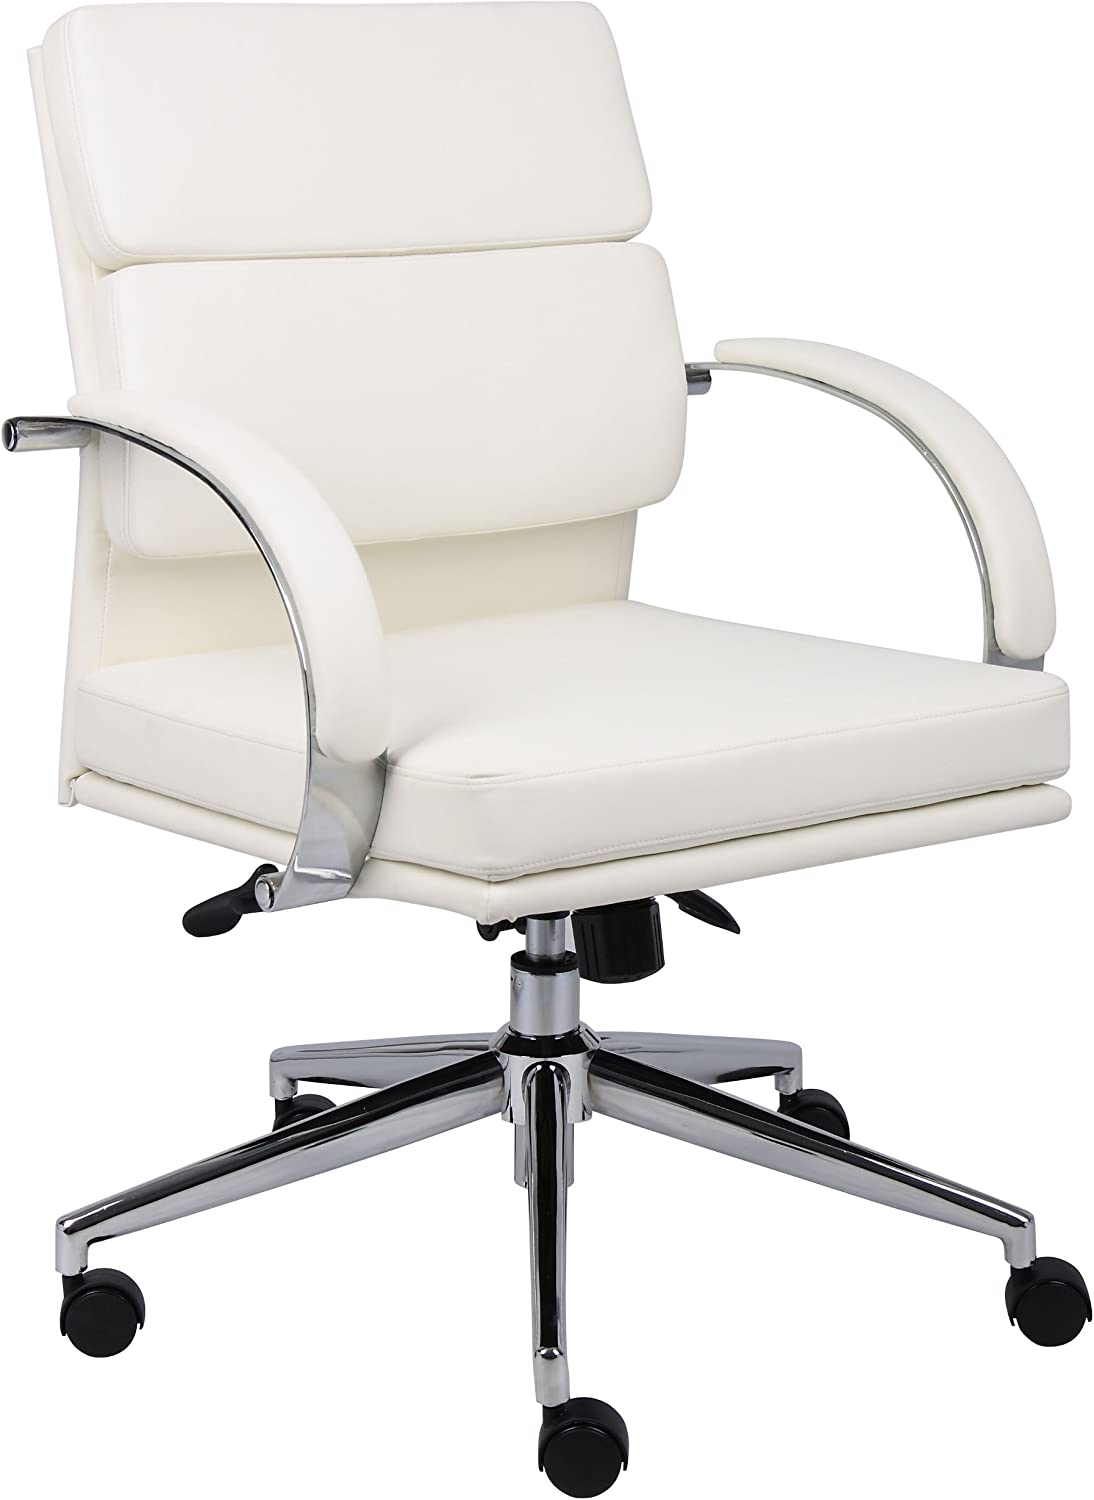 Boss Office Products B9406-WT Boss Caressoftplus Executive Series Chair, 250 lb, White Chrome